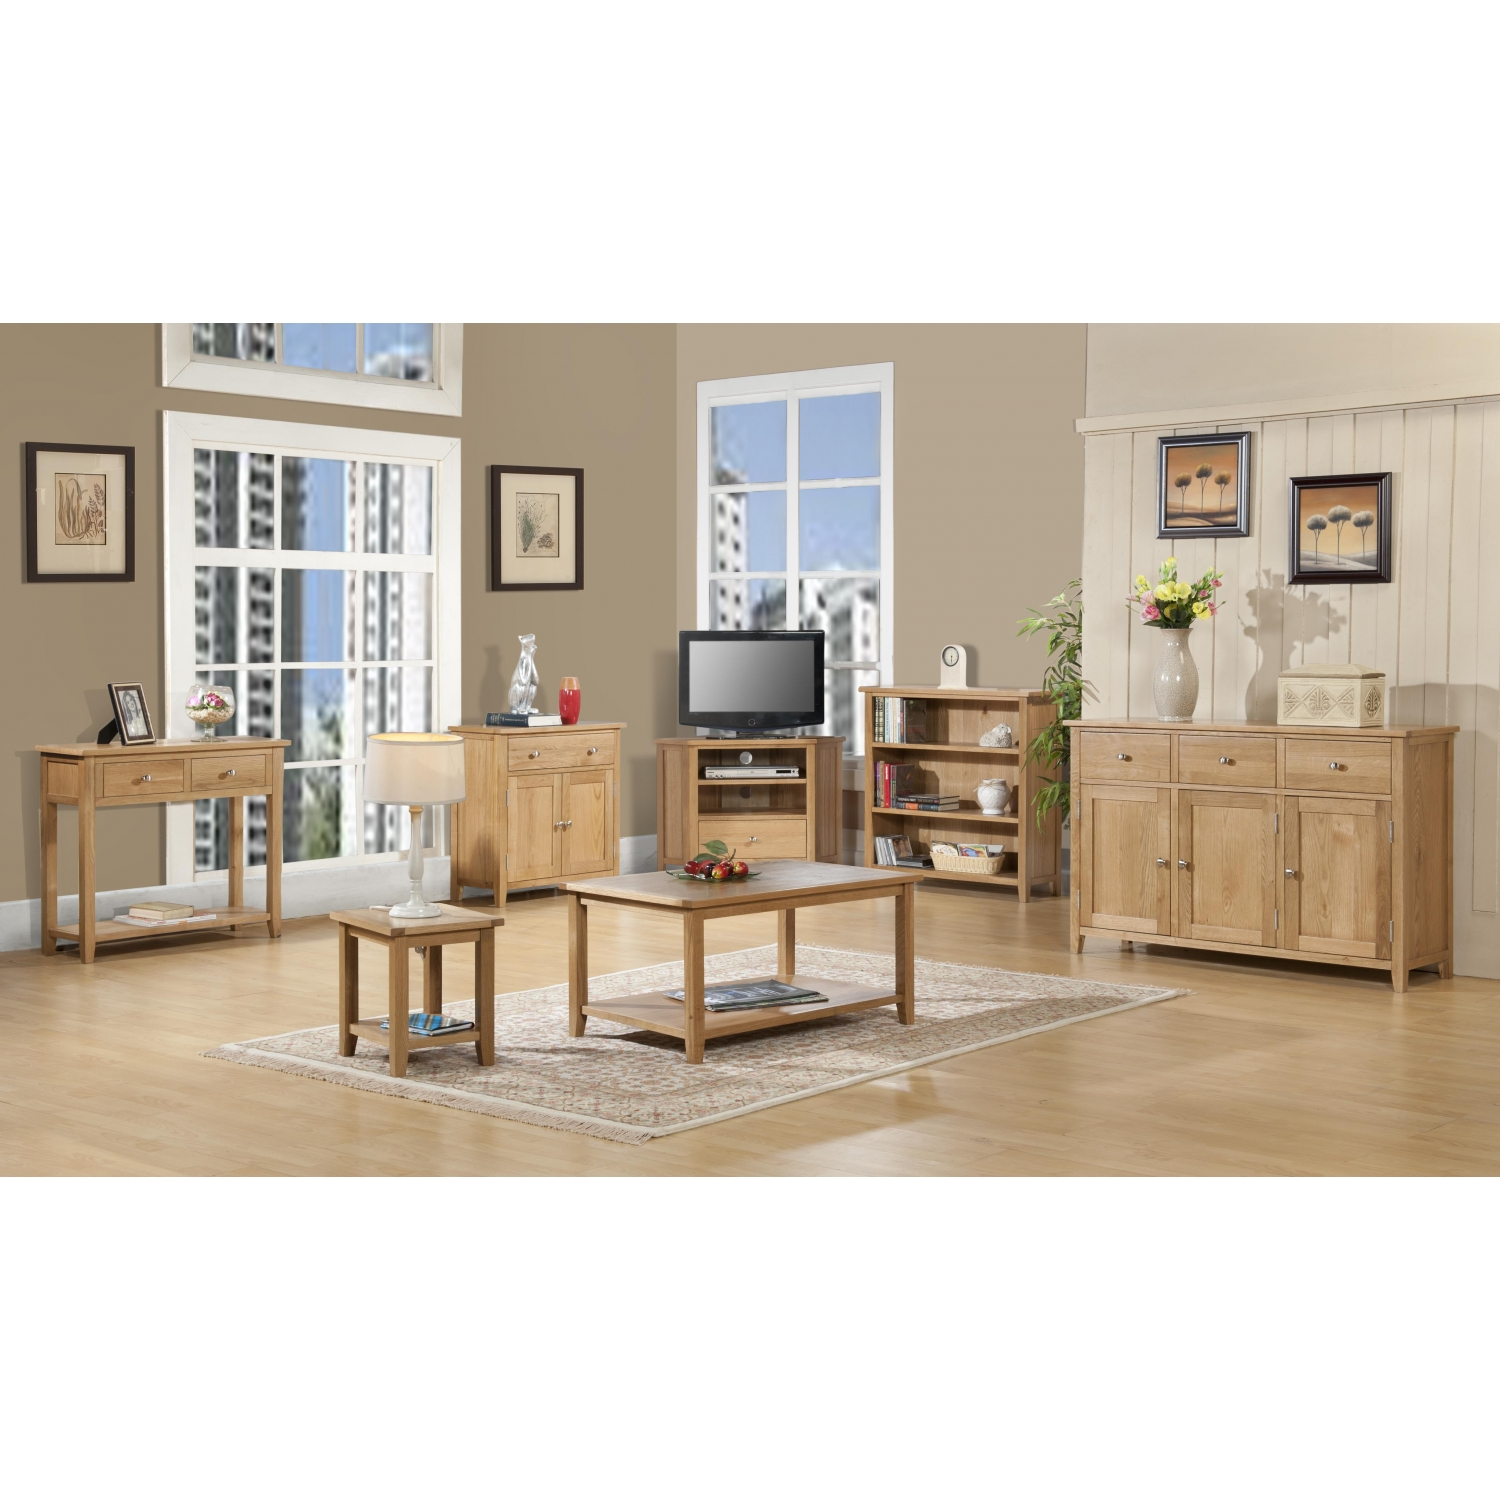 easton oak living dining room furniture small compact